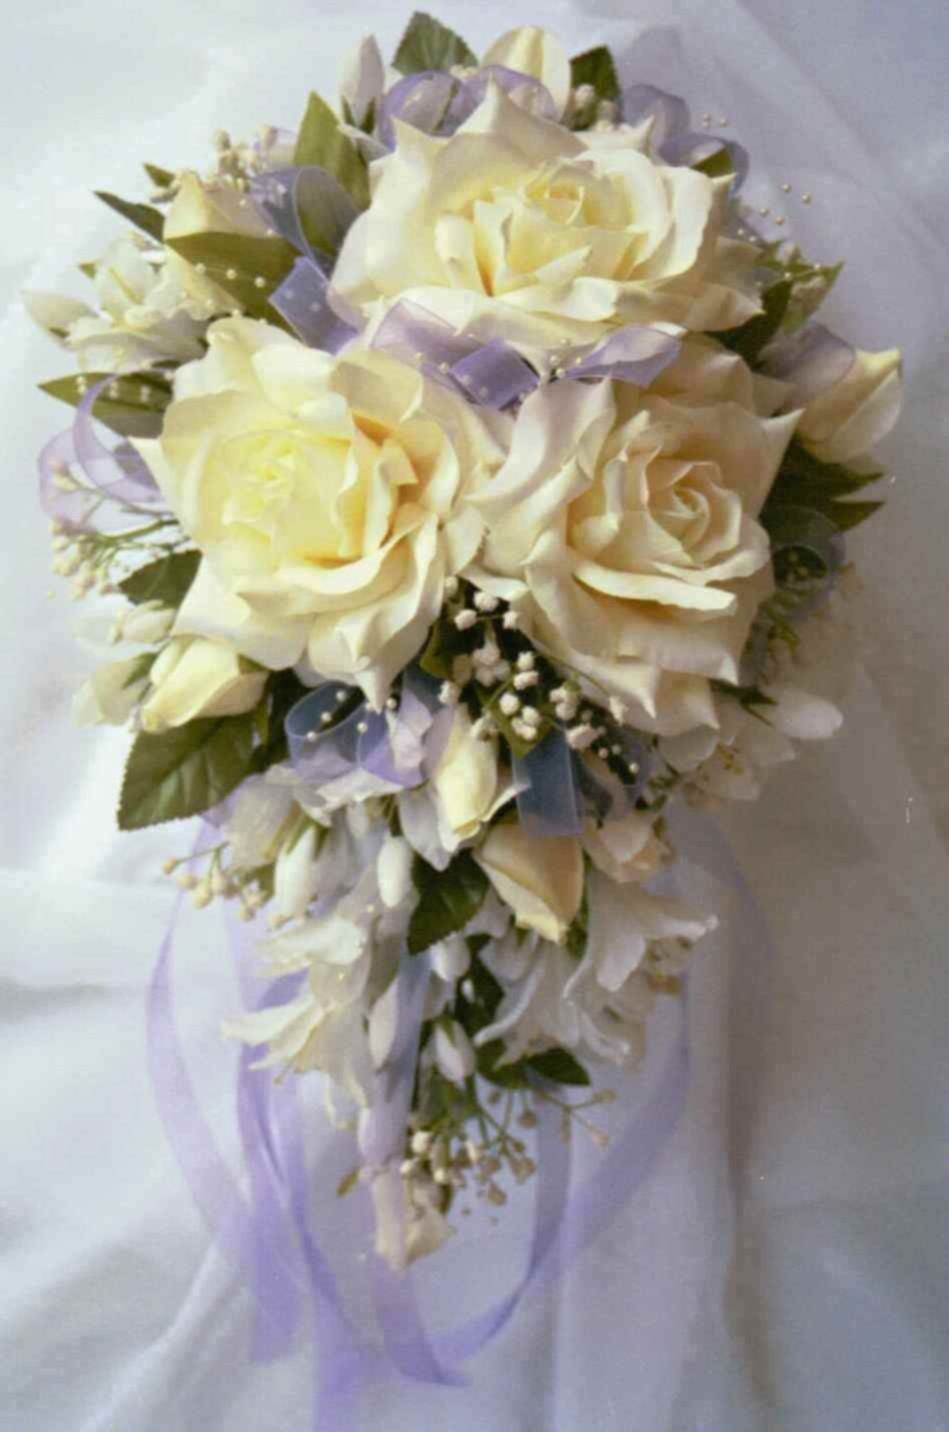 Buy Silk Wedding Flowers Online And Get An Entirely New Genre Of Bridal Bouquets Featuring High